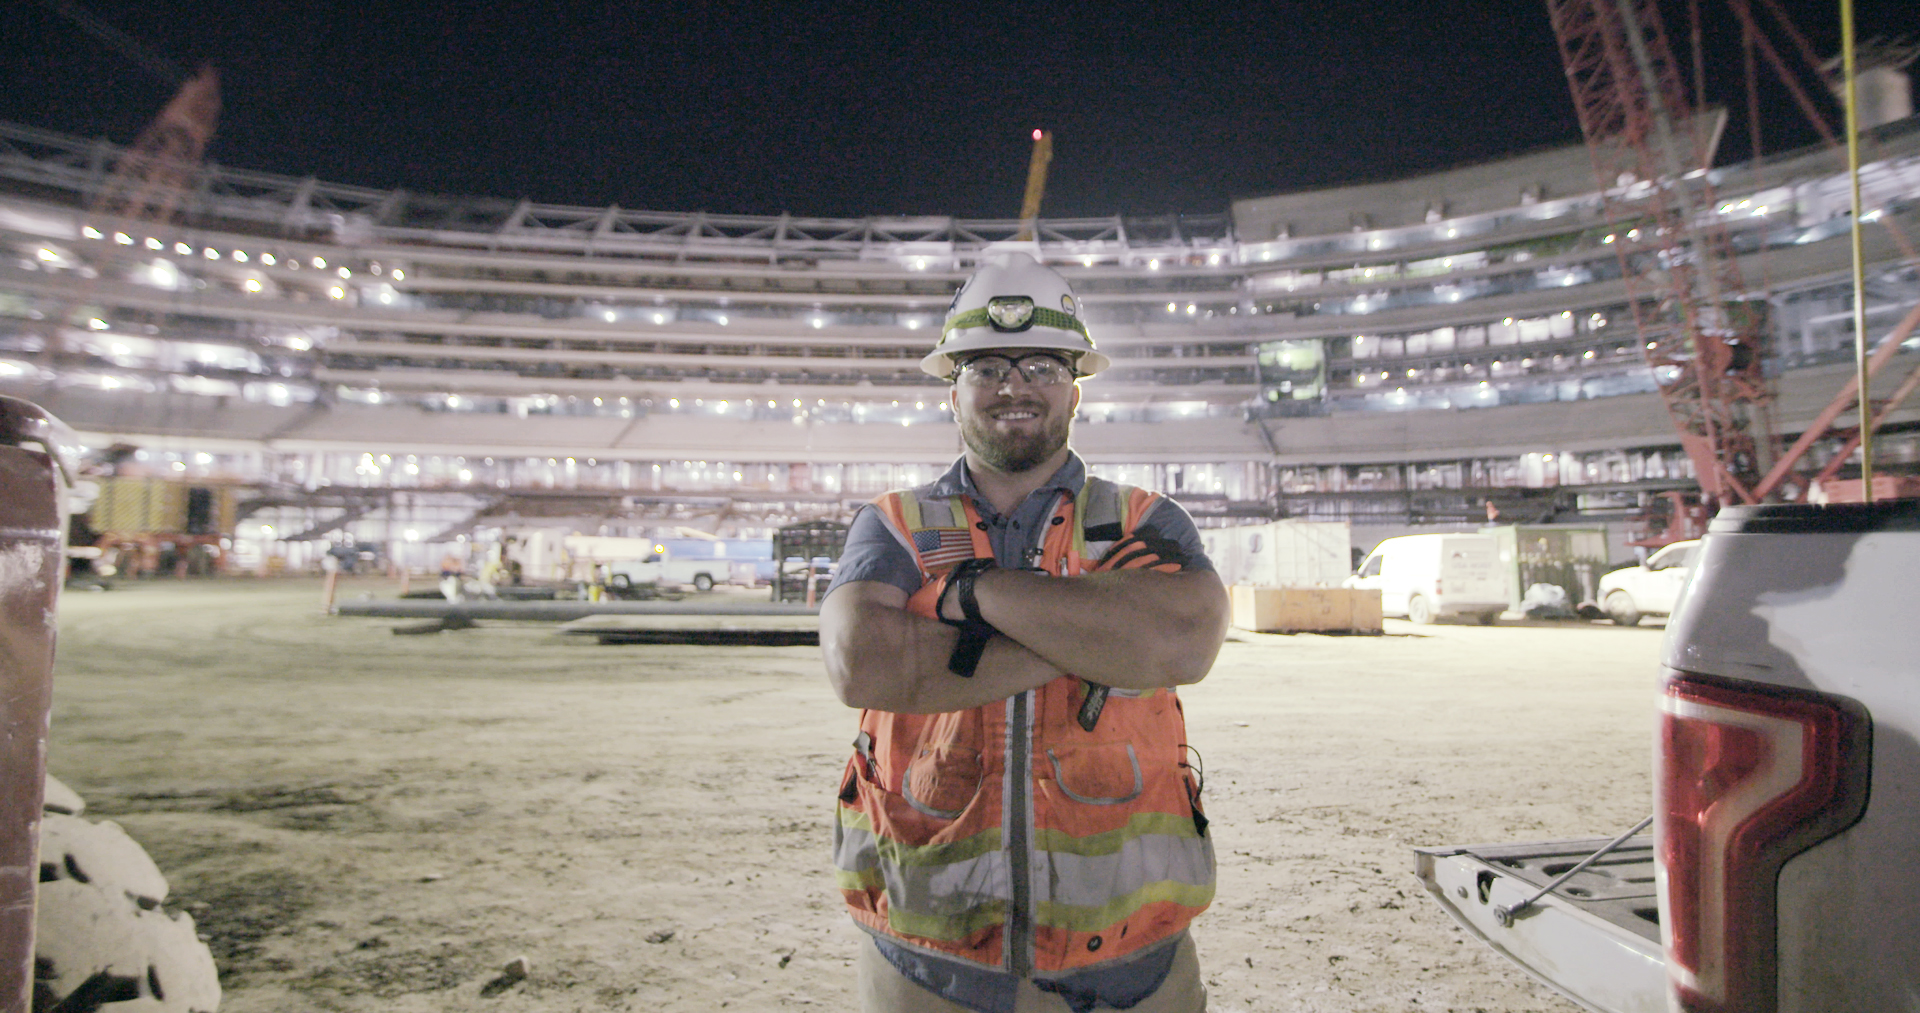 Vincent Marsala works as a night shift superintendent at the LA Stadium construction project.